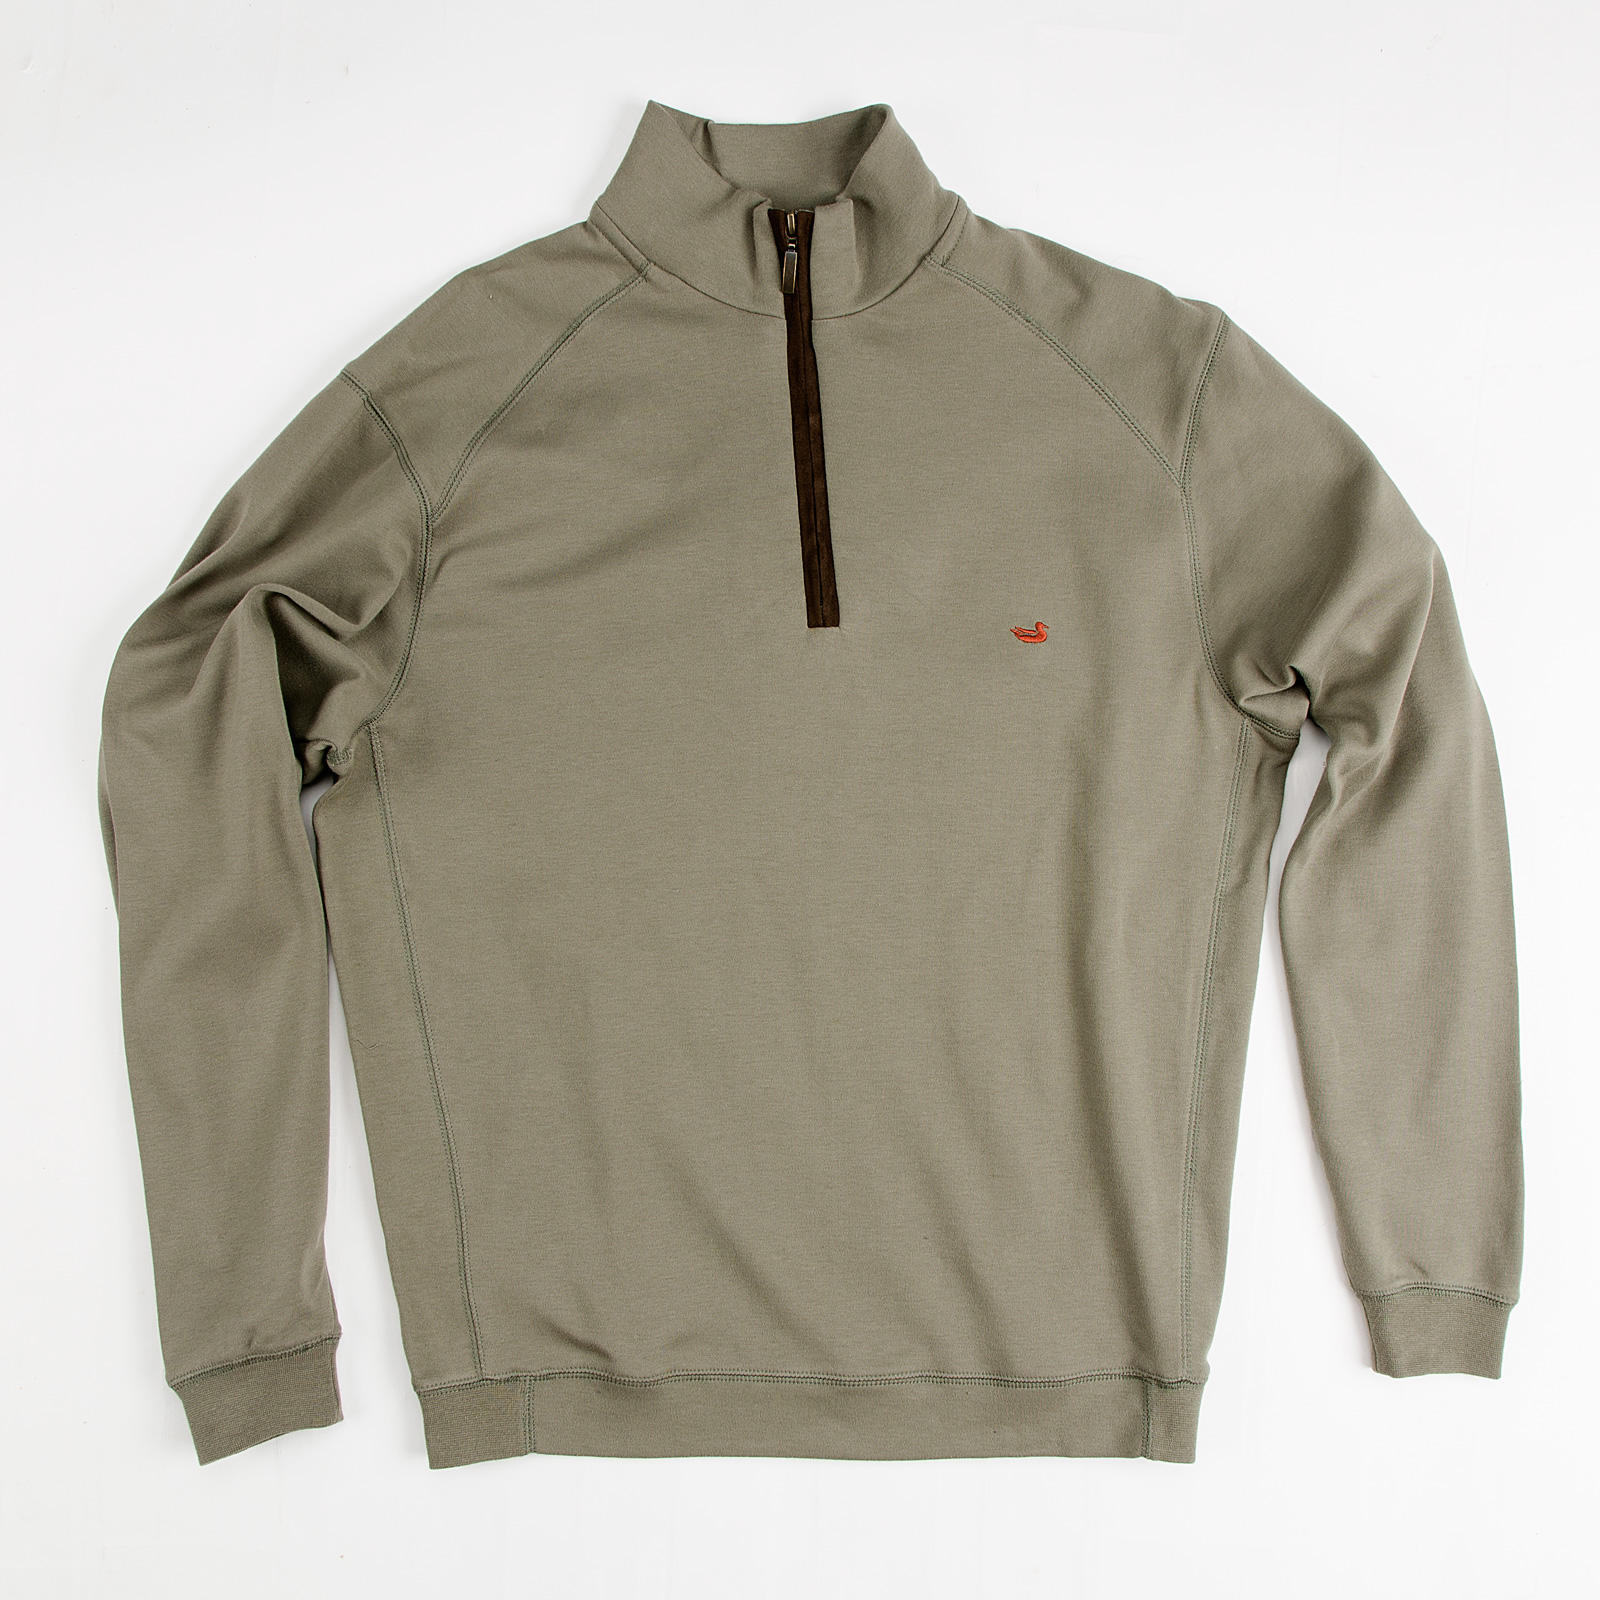 Southern marsh downpourdry fleece pullover ebay for Southern marsh dress shirts on sale